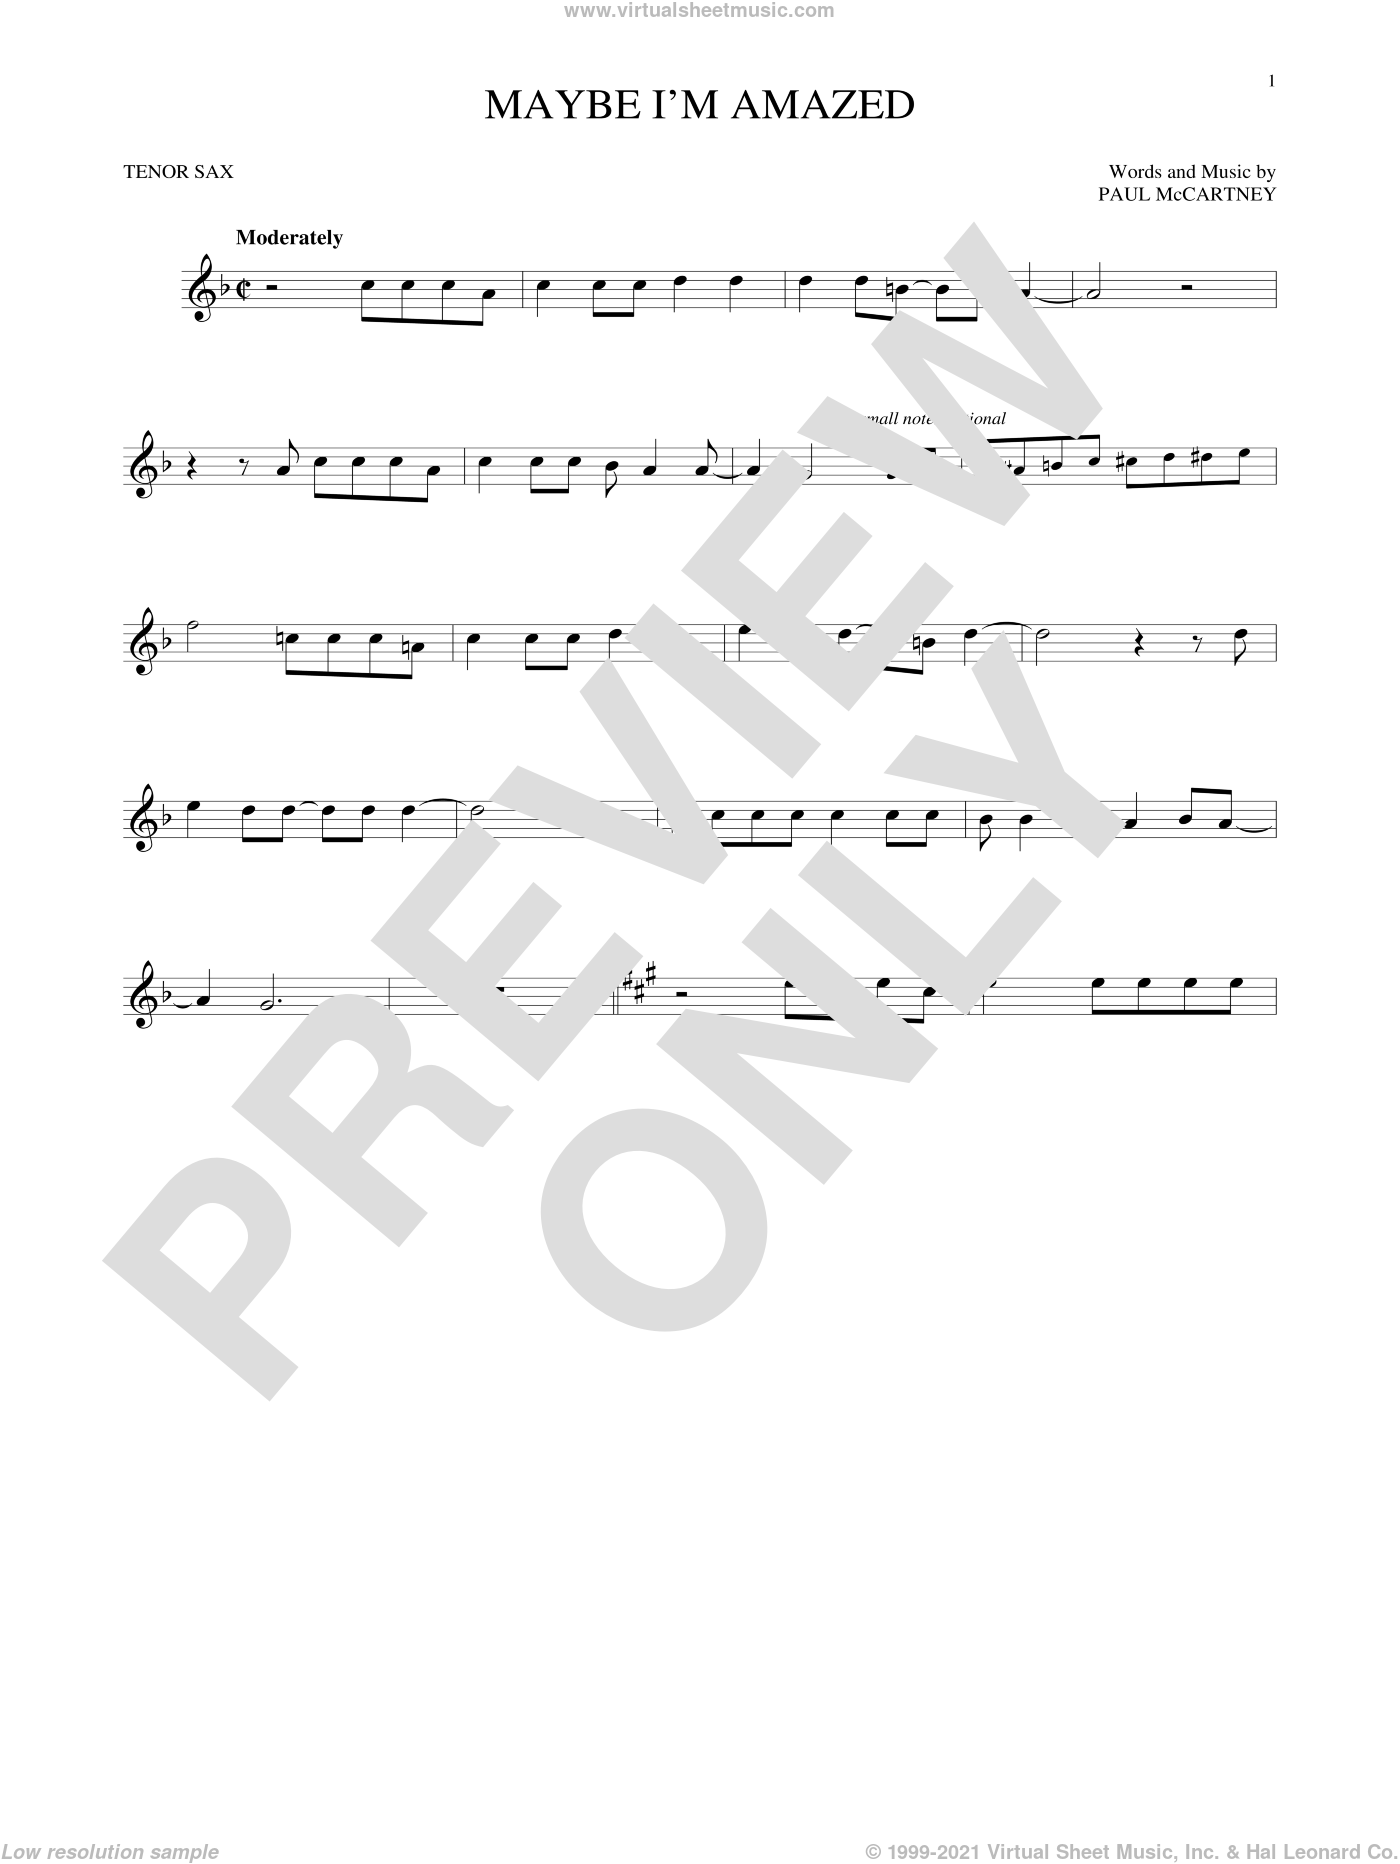 Maybe I'm Amazed sheet music for tenor saxophone solo by Paul McCartney, intermediate skill level